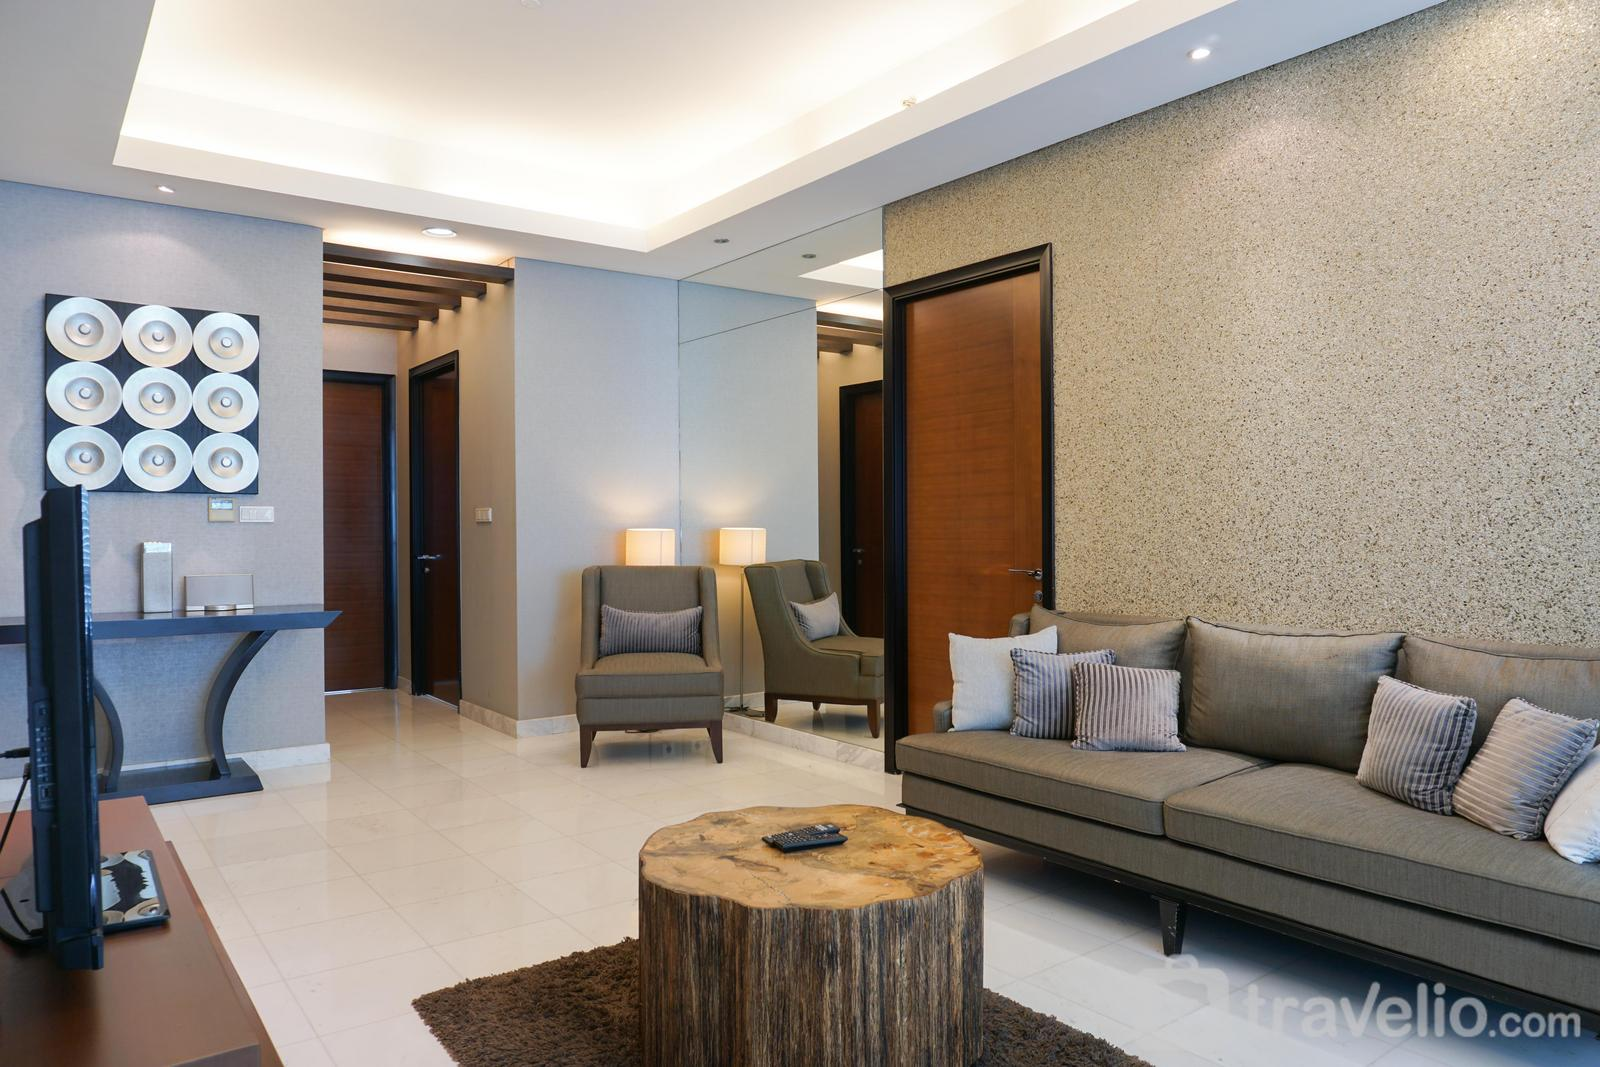 The Peak Sudirman - Luxury 2BR with Study Room at The Peak Apartment By Travelio